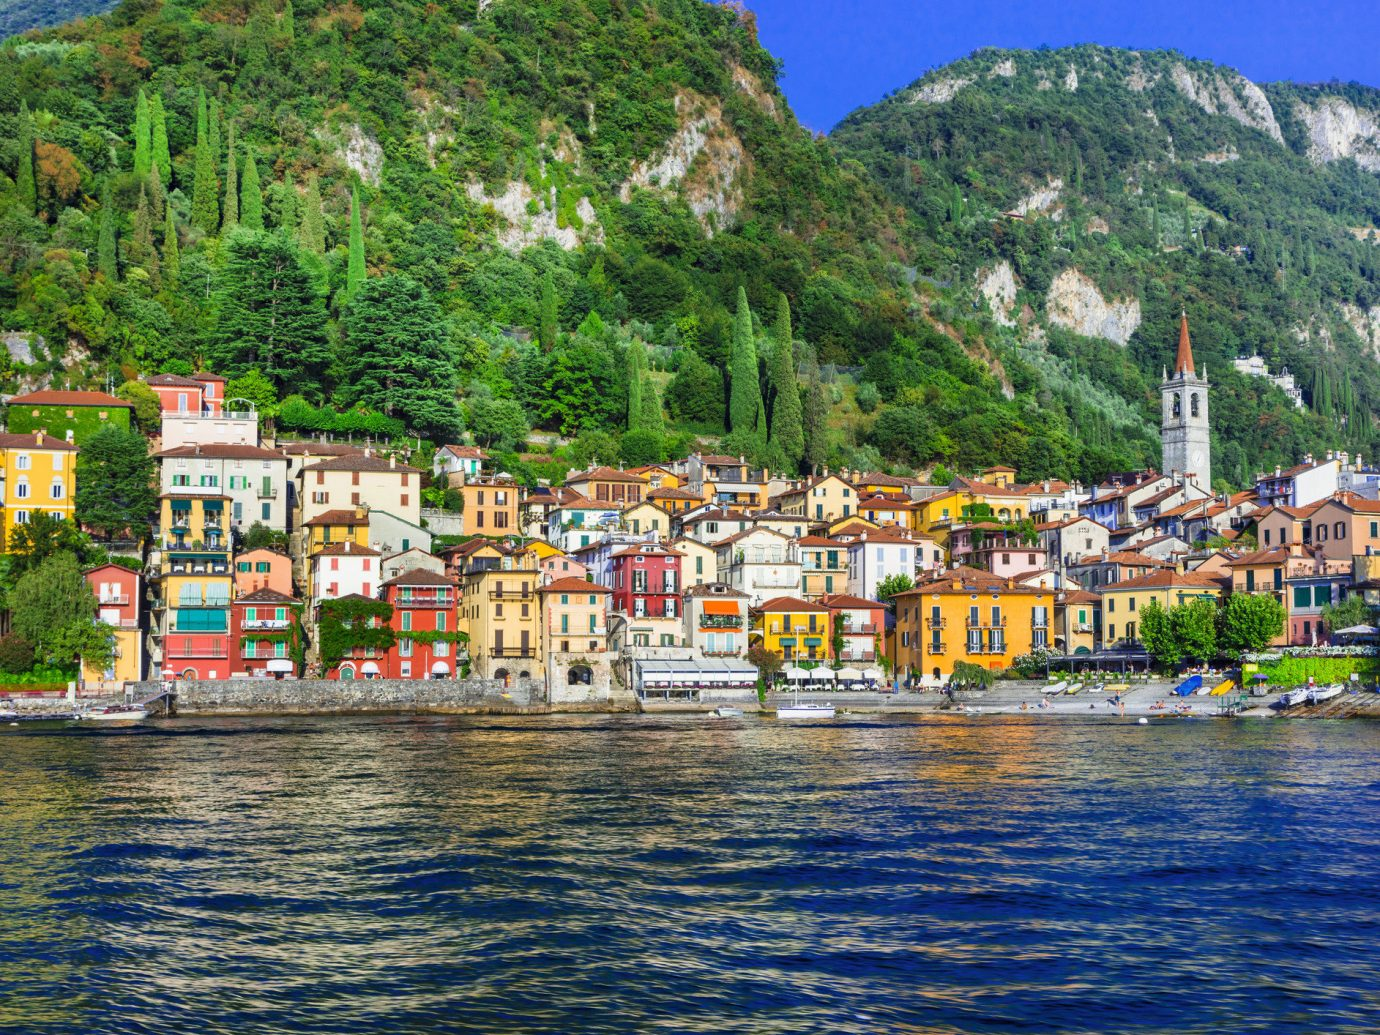 Trip Ideas tree outdoor water mountain mountain village Coast waterway Harbor Town Lake scene sky City Village bay River mount scenery Sea tourism reflection promontory fjord hill station water transportation real estate landscape mountain range lake district long colorful traveling line